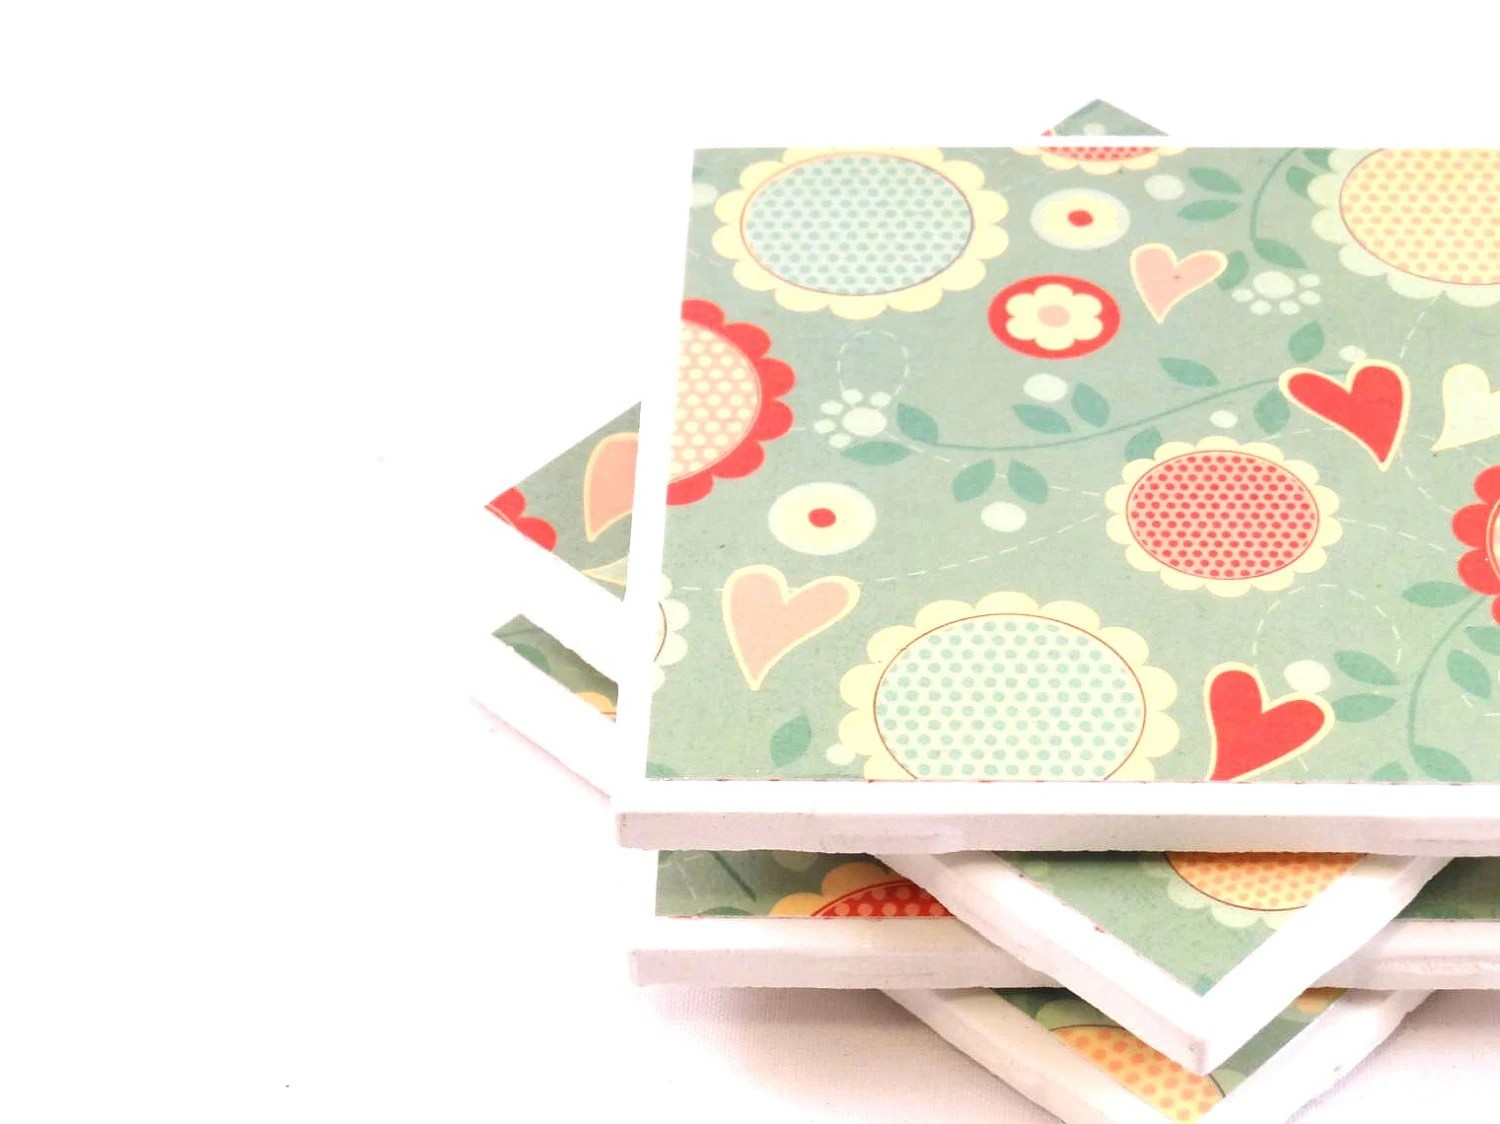 Tile Coasters -  Mint and Peach Flowers - Set of 4 Coasters - littlecoastergnome